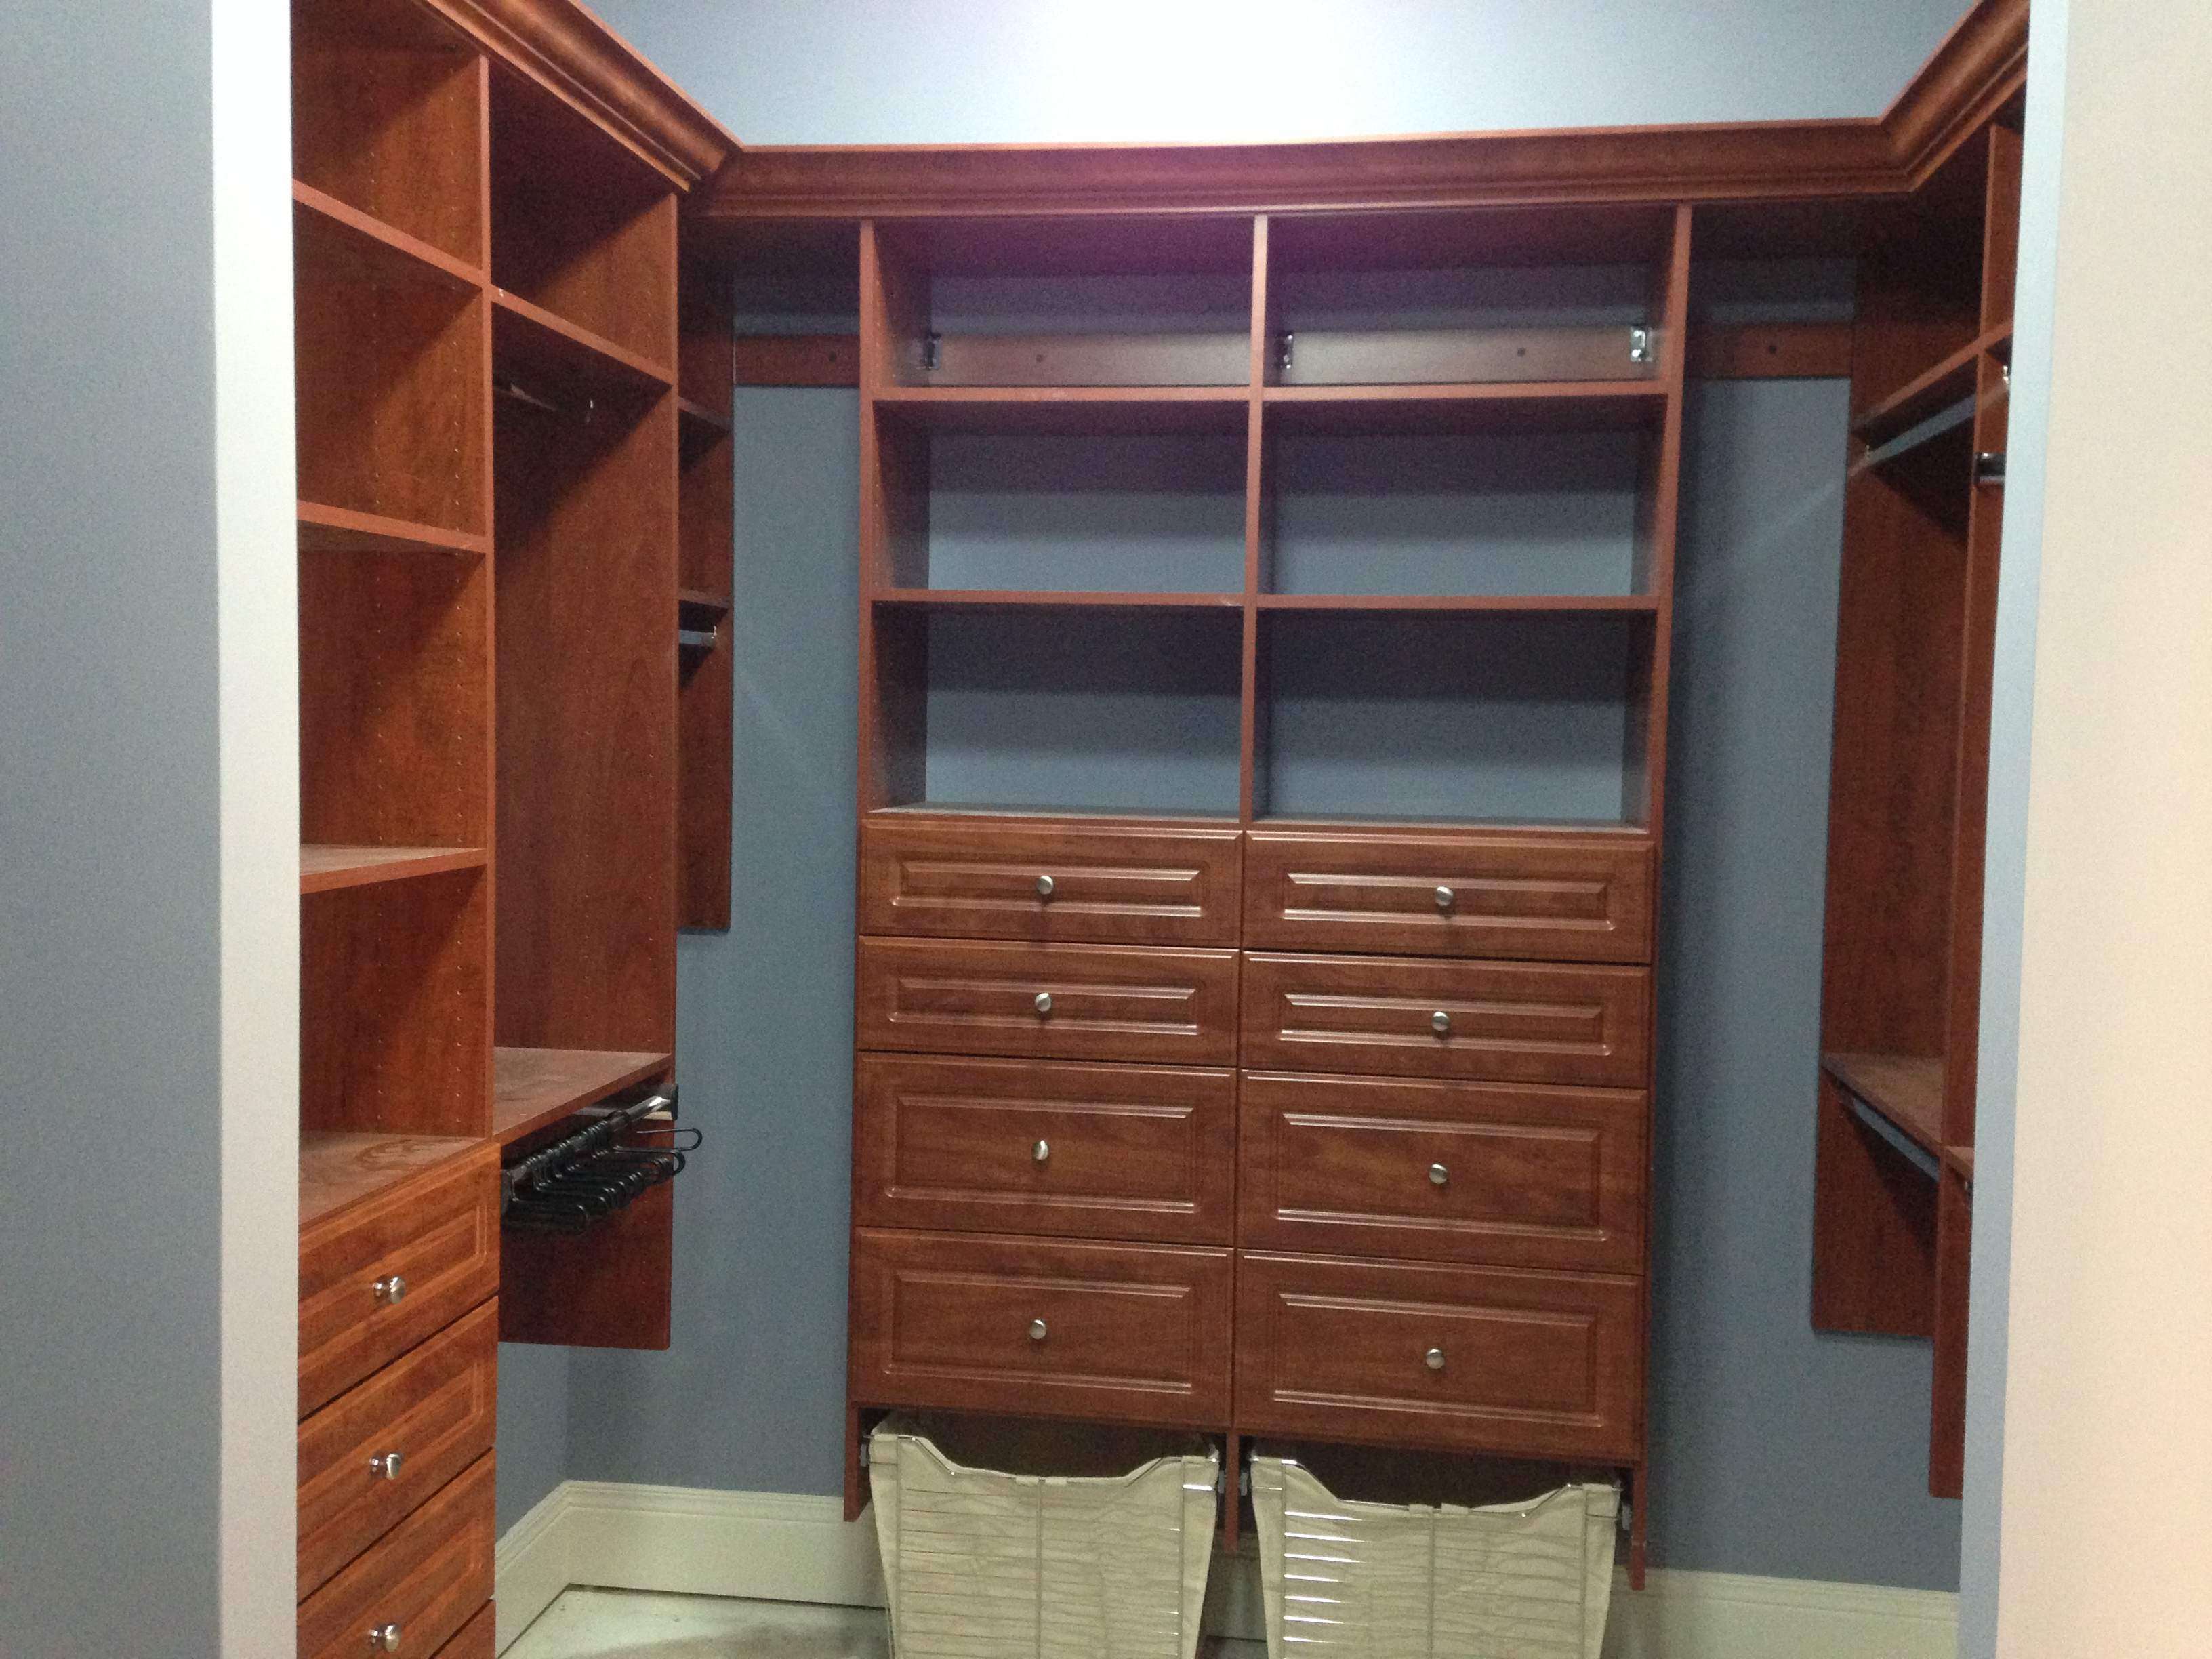 Factors to Consider In Customized Closet Design